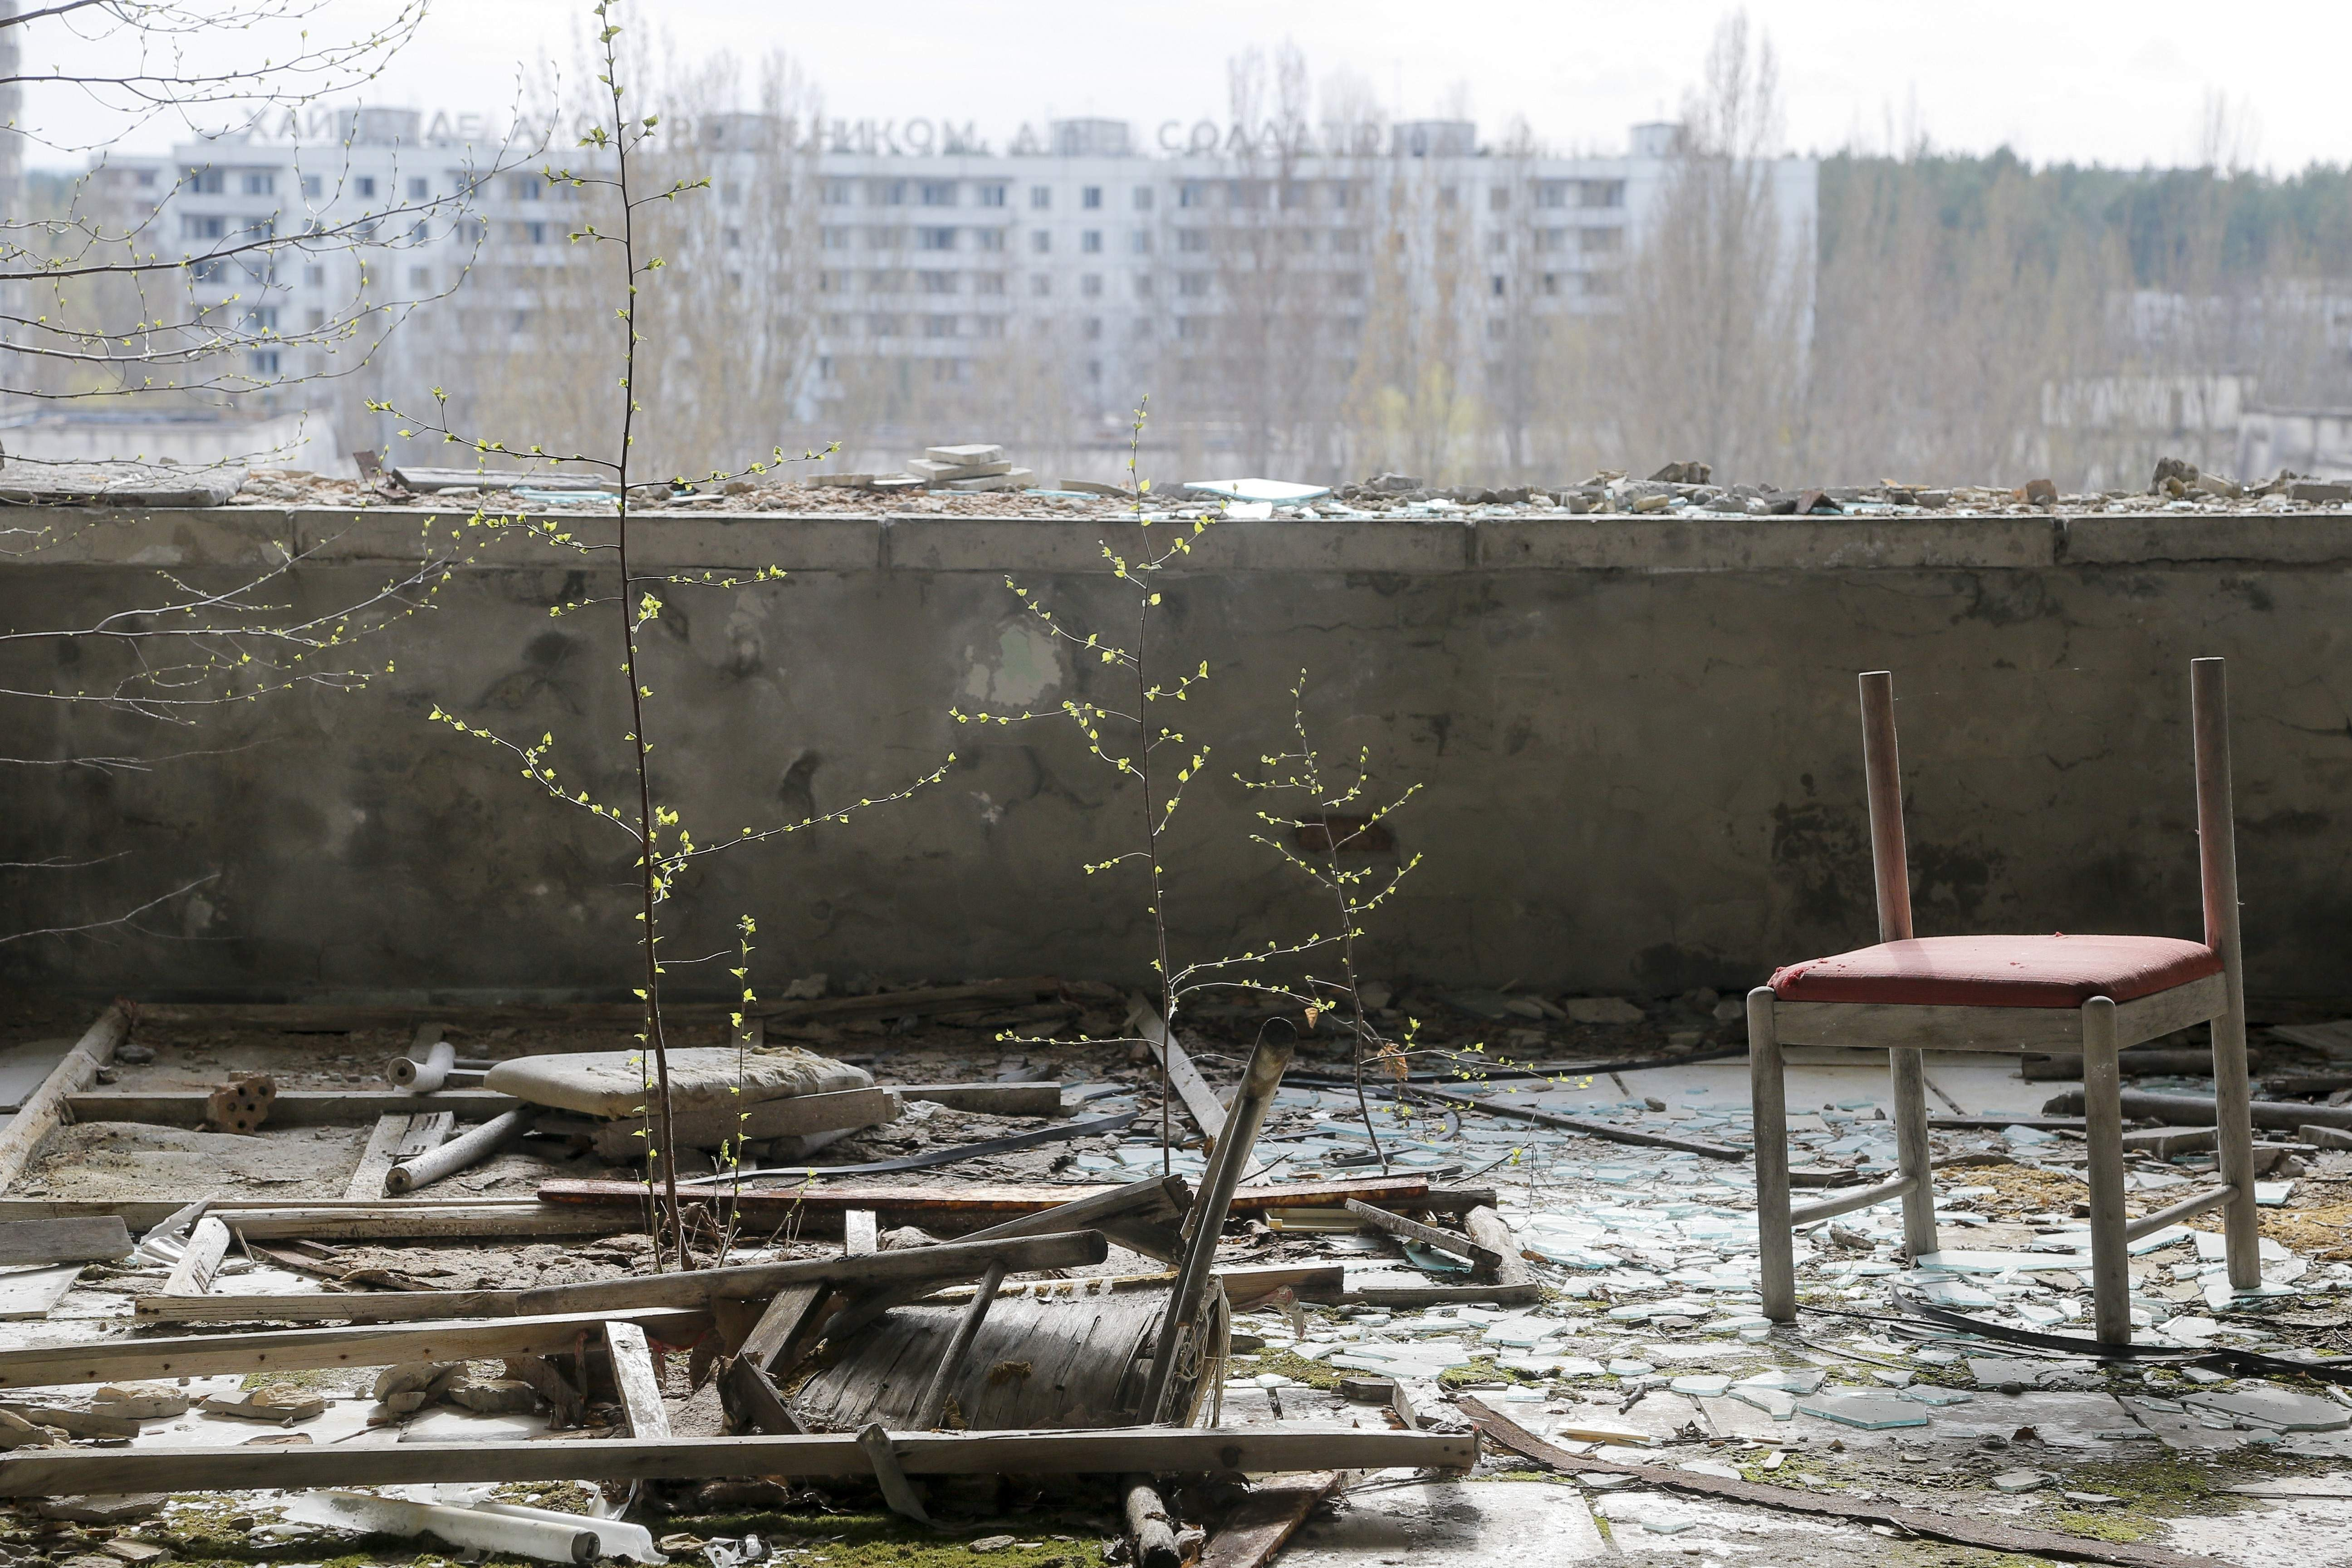 In this photo taken Wednesday, April 5, 2017, small trees grow on a balcony in the deserted town of Pripyat, some 3 kilometers (1.86 miles) from the Chernobyl nuclear power plant Ukraine. Once home to some 50,000 people whose lives were connected to the Chernobyl nuclear power plant, Pripyat was hastily evacuated one day after a reactor at the plant 3 kilometers (2 miles away) exploded on April 26, 1986. The explosion and the subsequent fire spewed a radioactive plume over much of northern Europe. THE ASSOCIATED PRESS